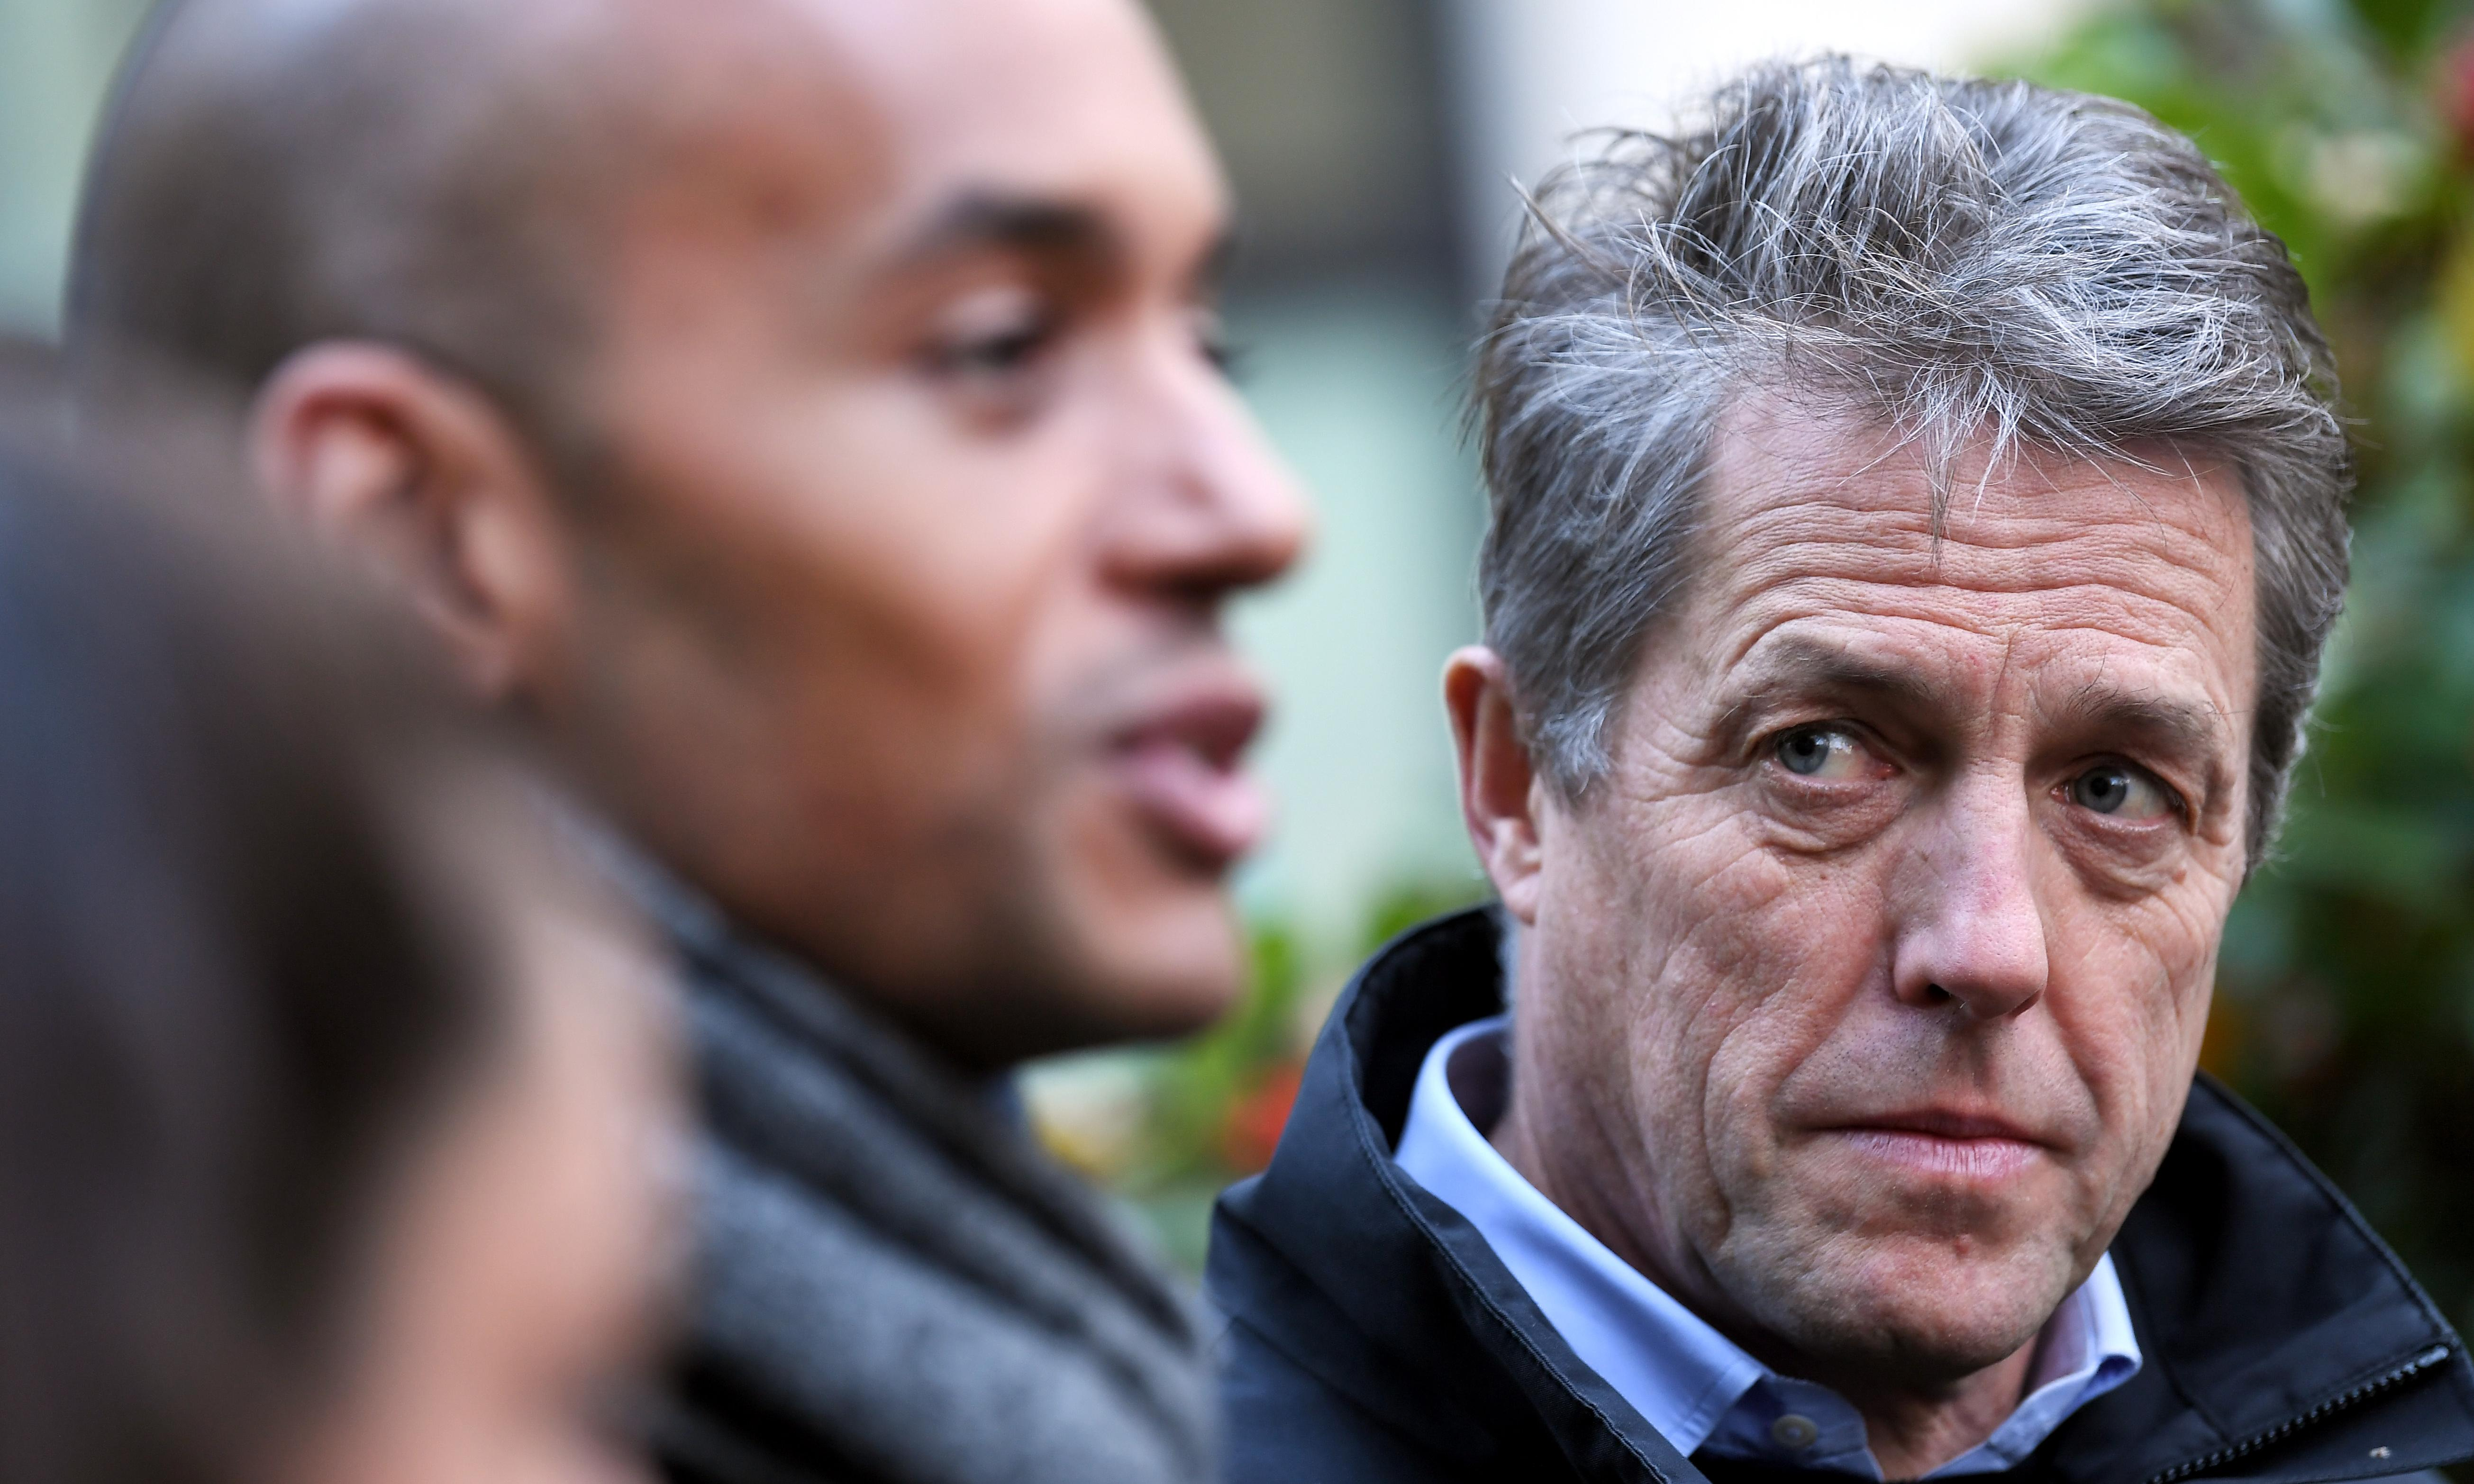 Hugh Grant: 'I want to do my bit to prevent a national catastrophe'